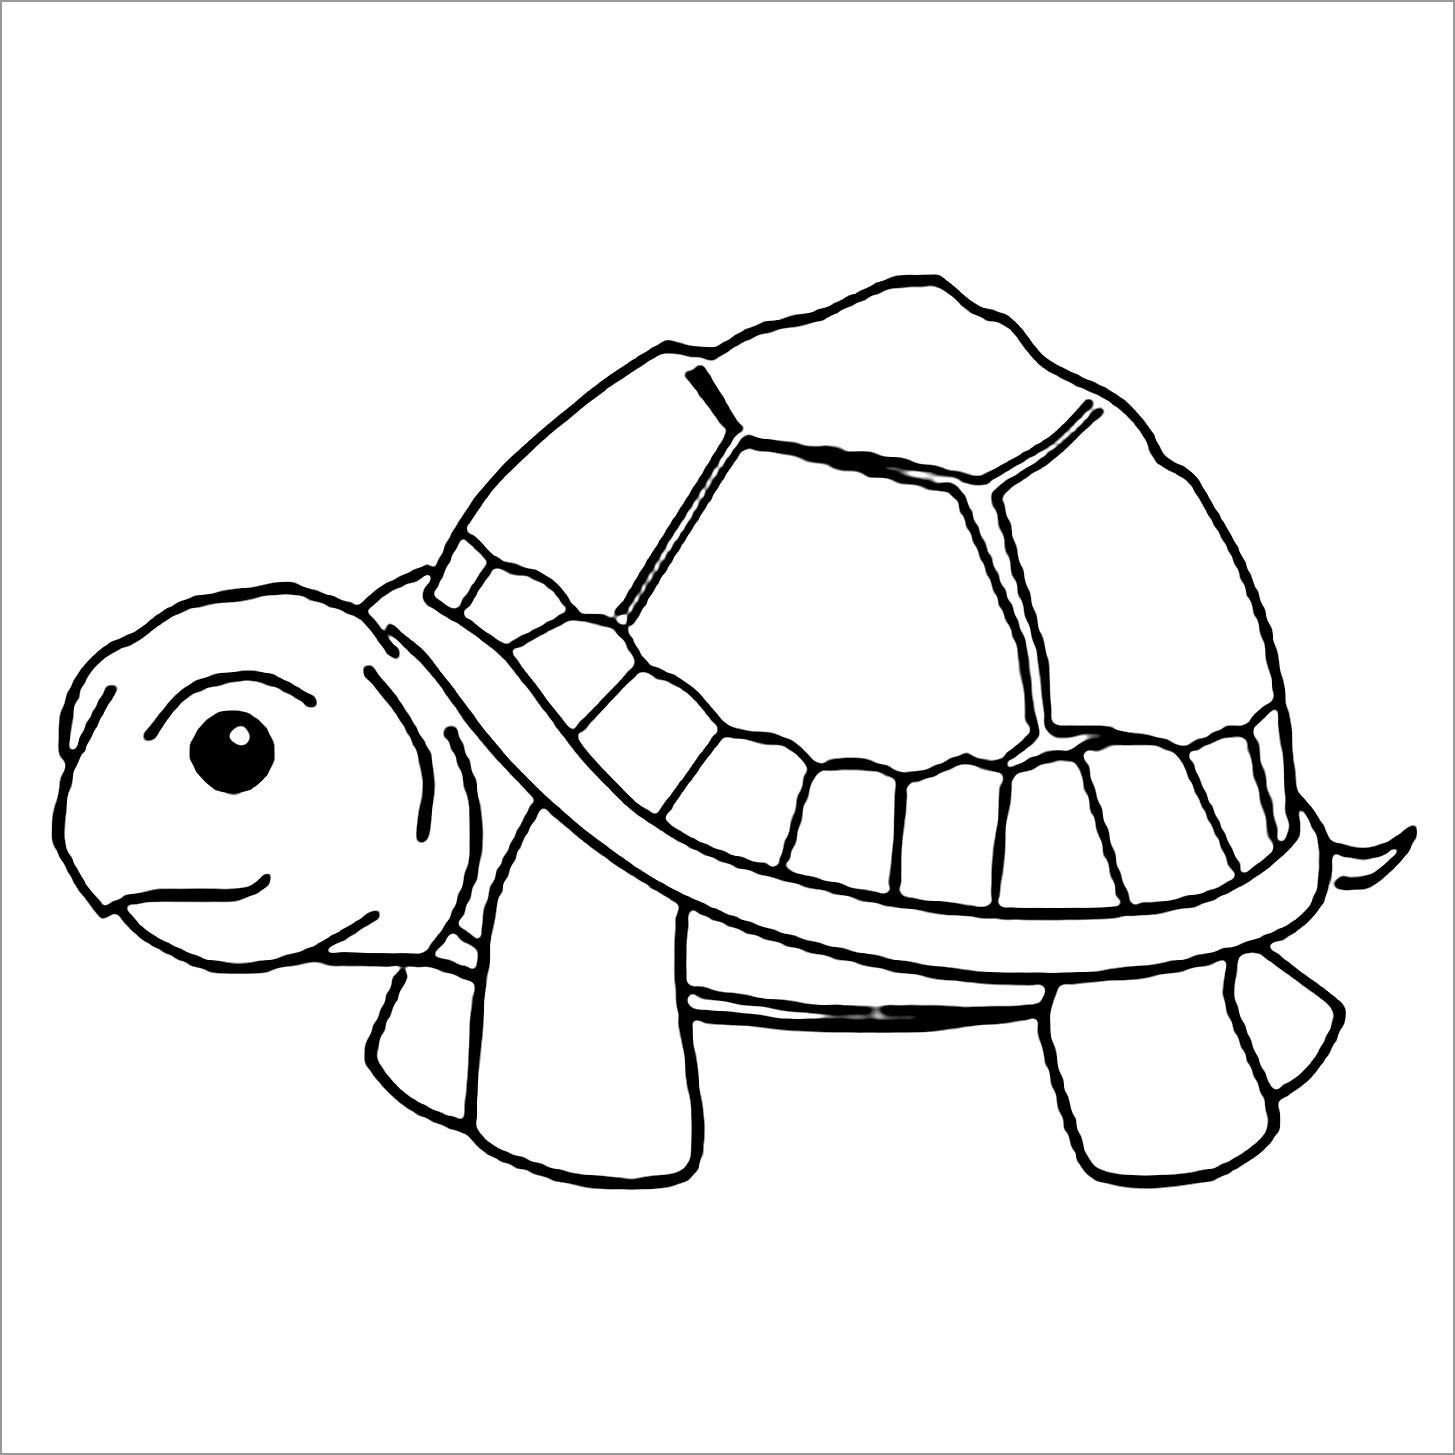 Picture Of A Turtle Coloring Page